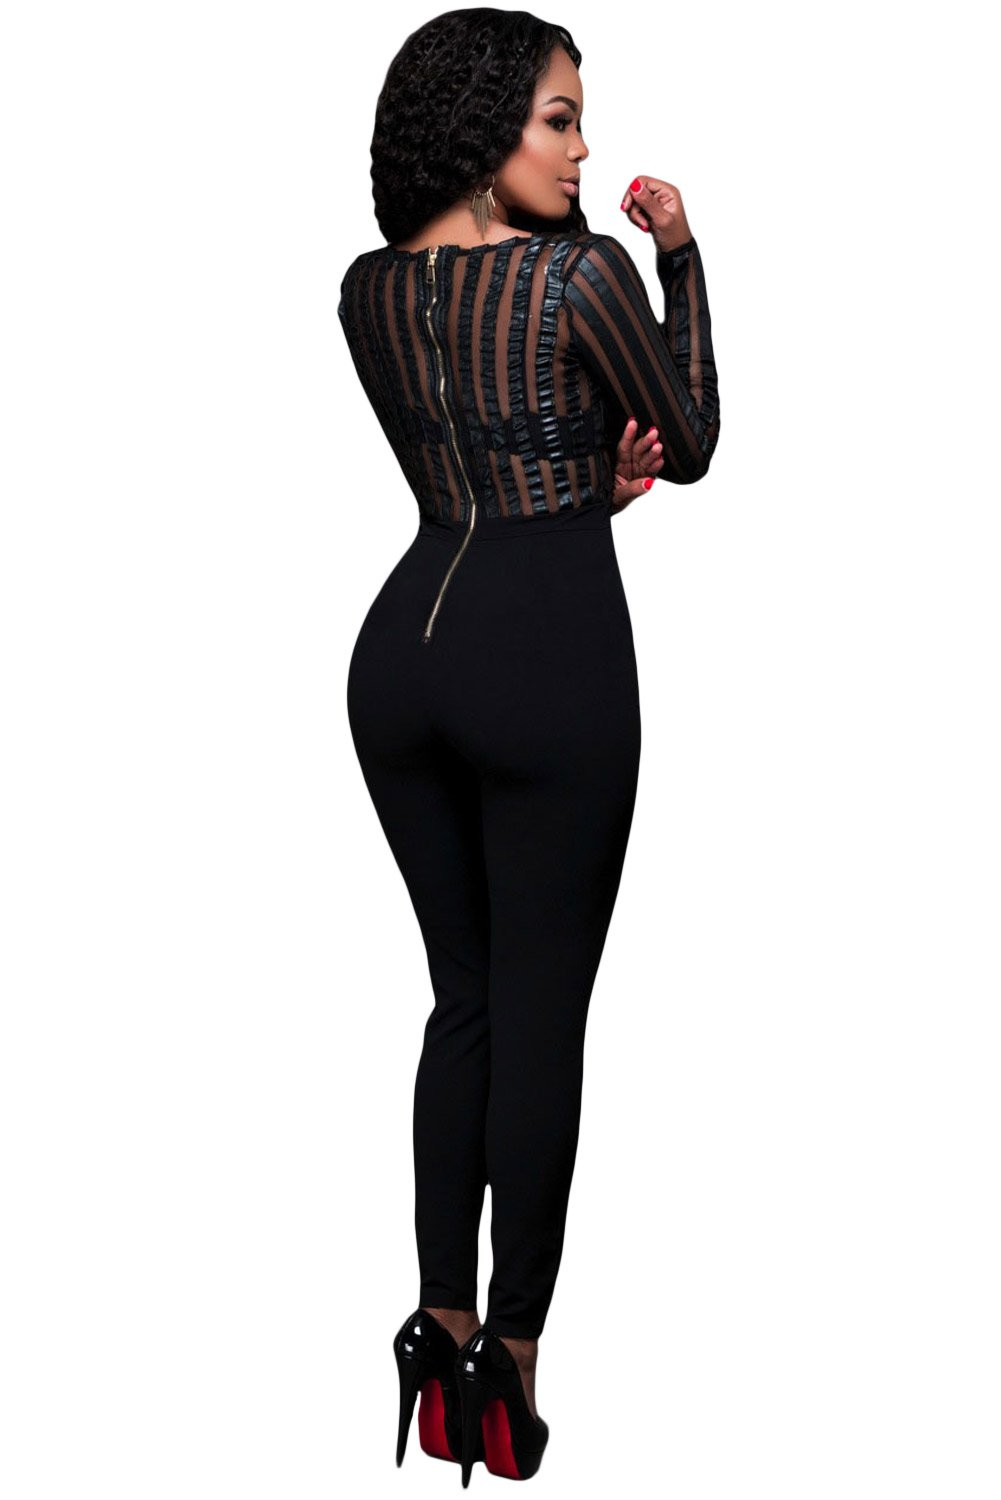 New ladies black faux leather & mesh jumpsuit catsuit club wear party wear  size M UK 10-12 EU 38-40: Amazon.co.uk: DIY & Tools